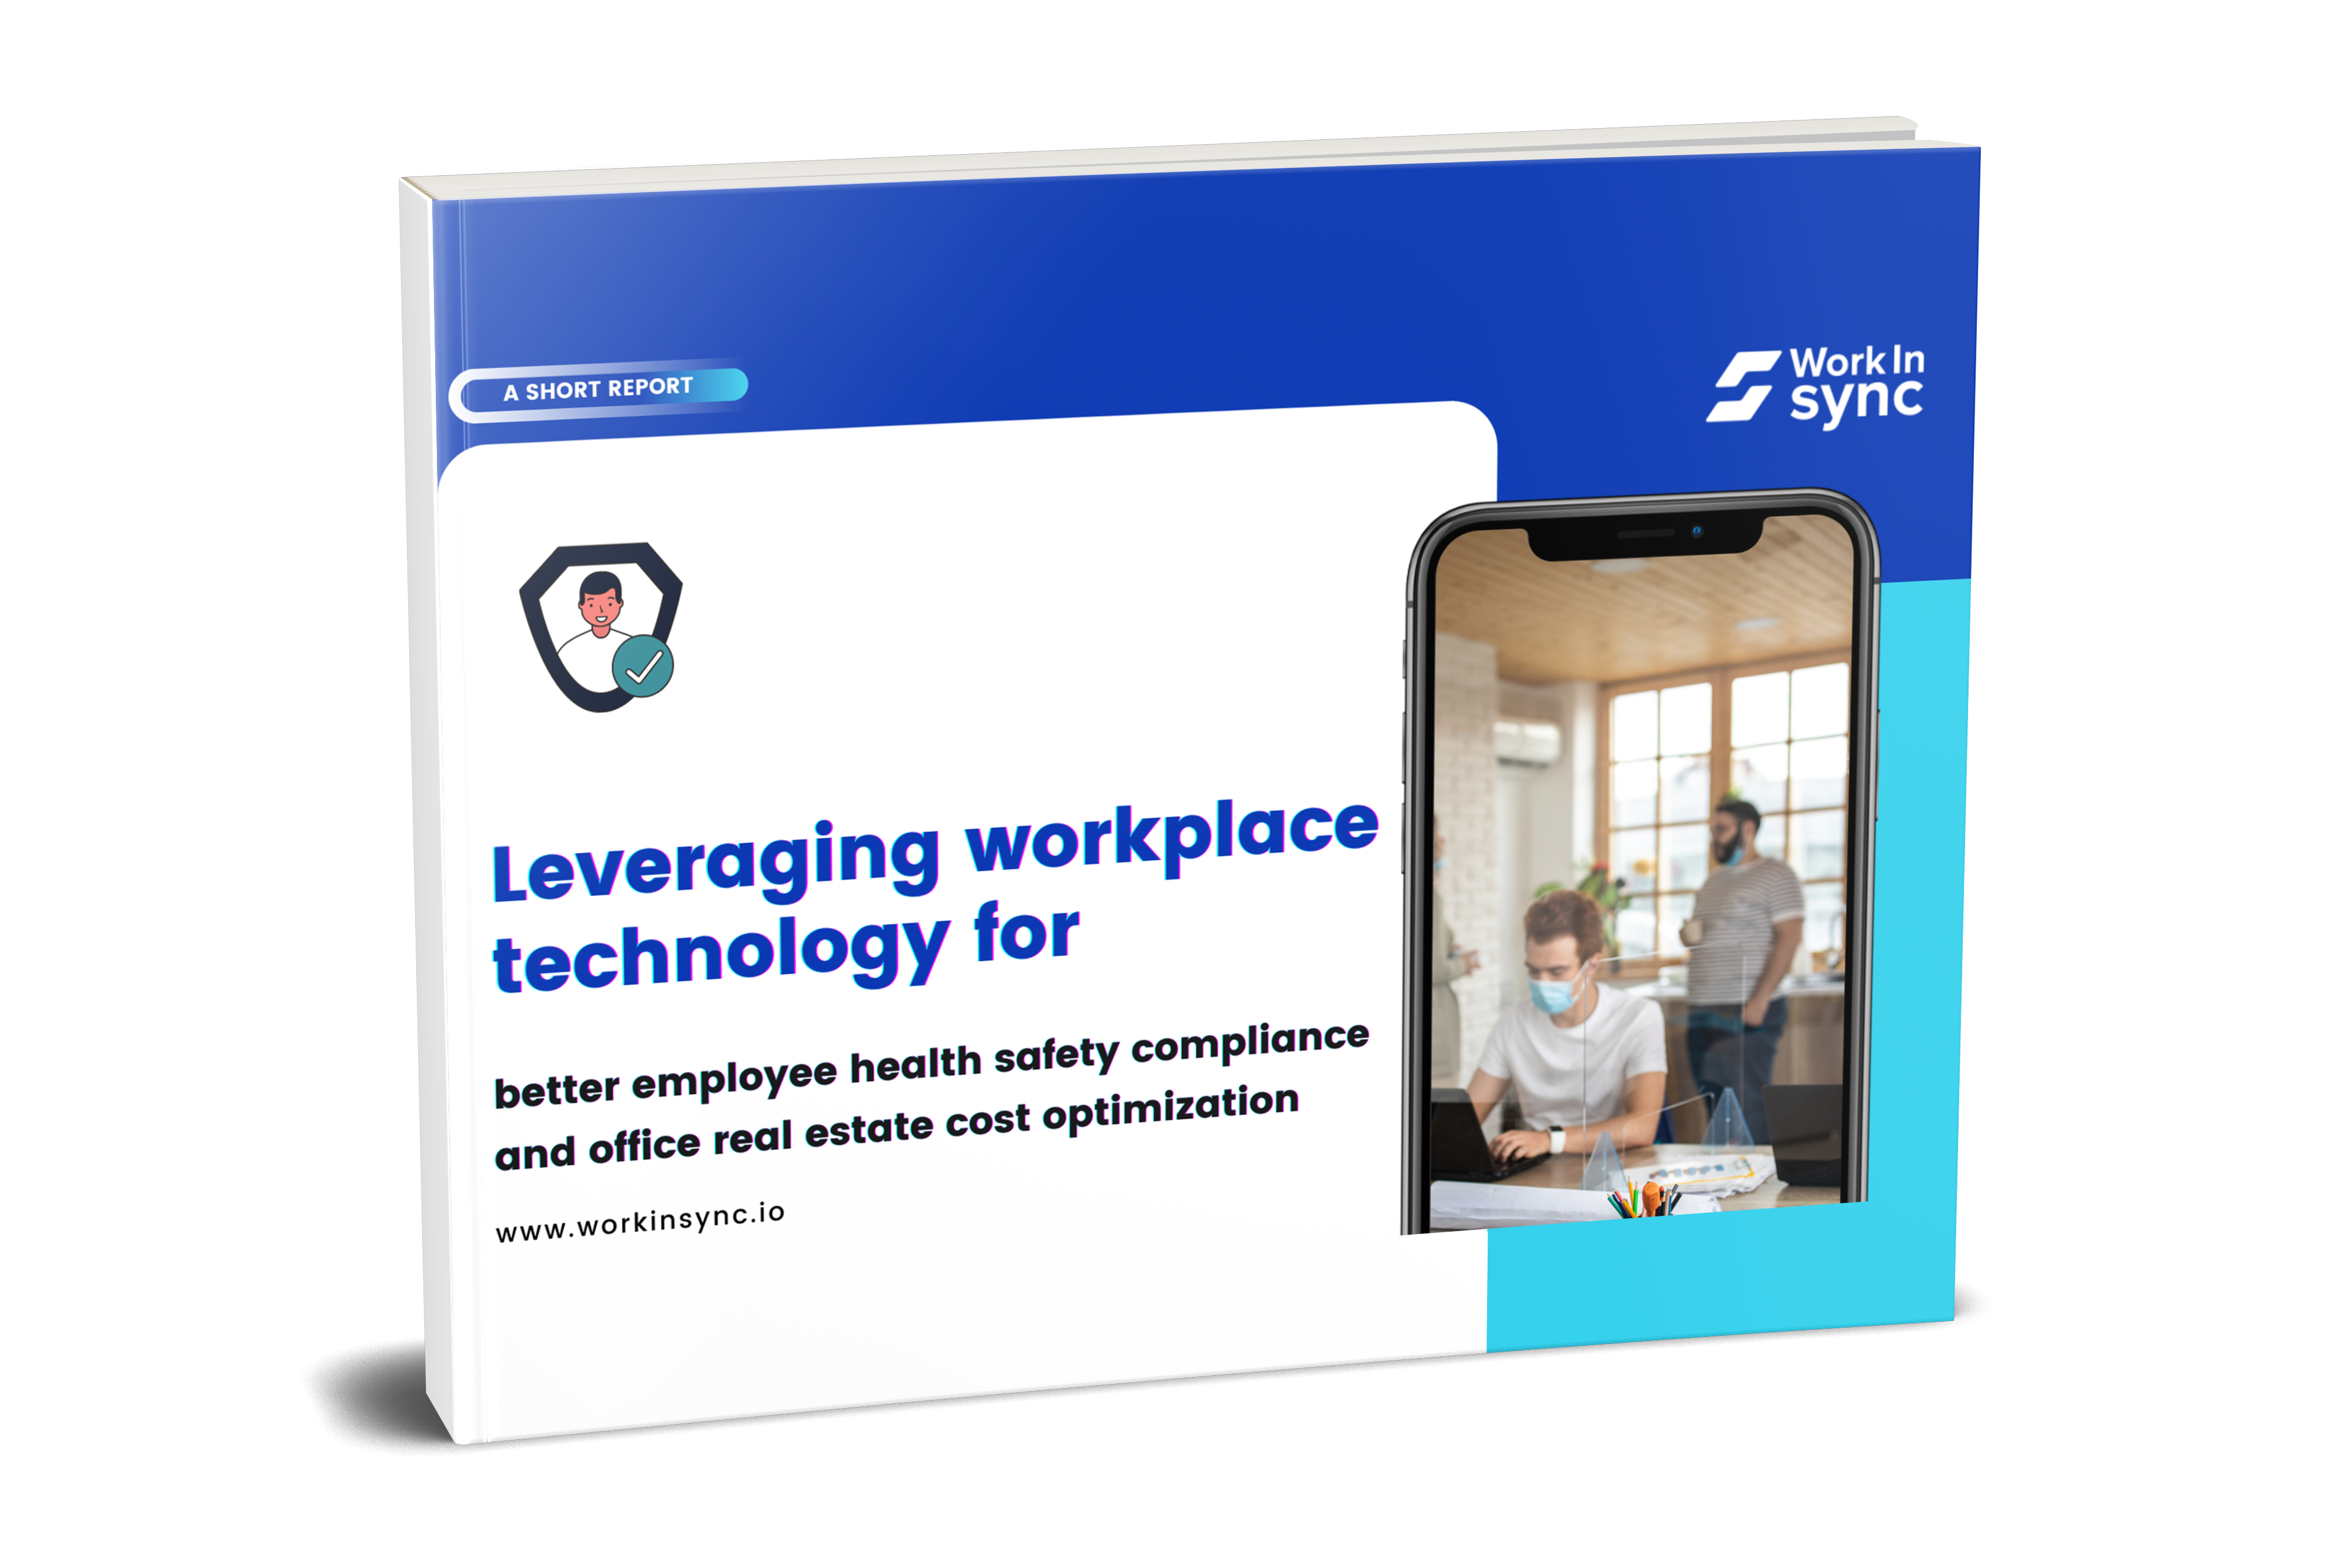 Workplace Technology for Optimizing Real-Estate 3D Image